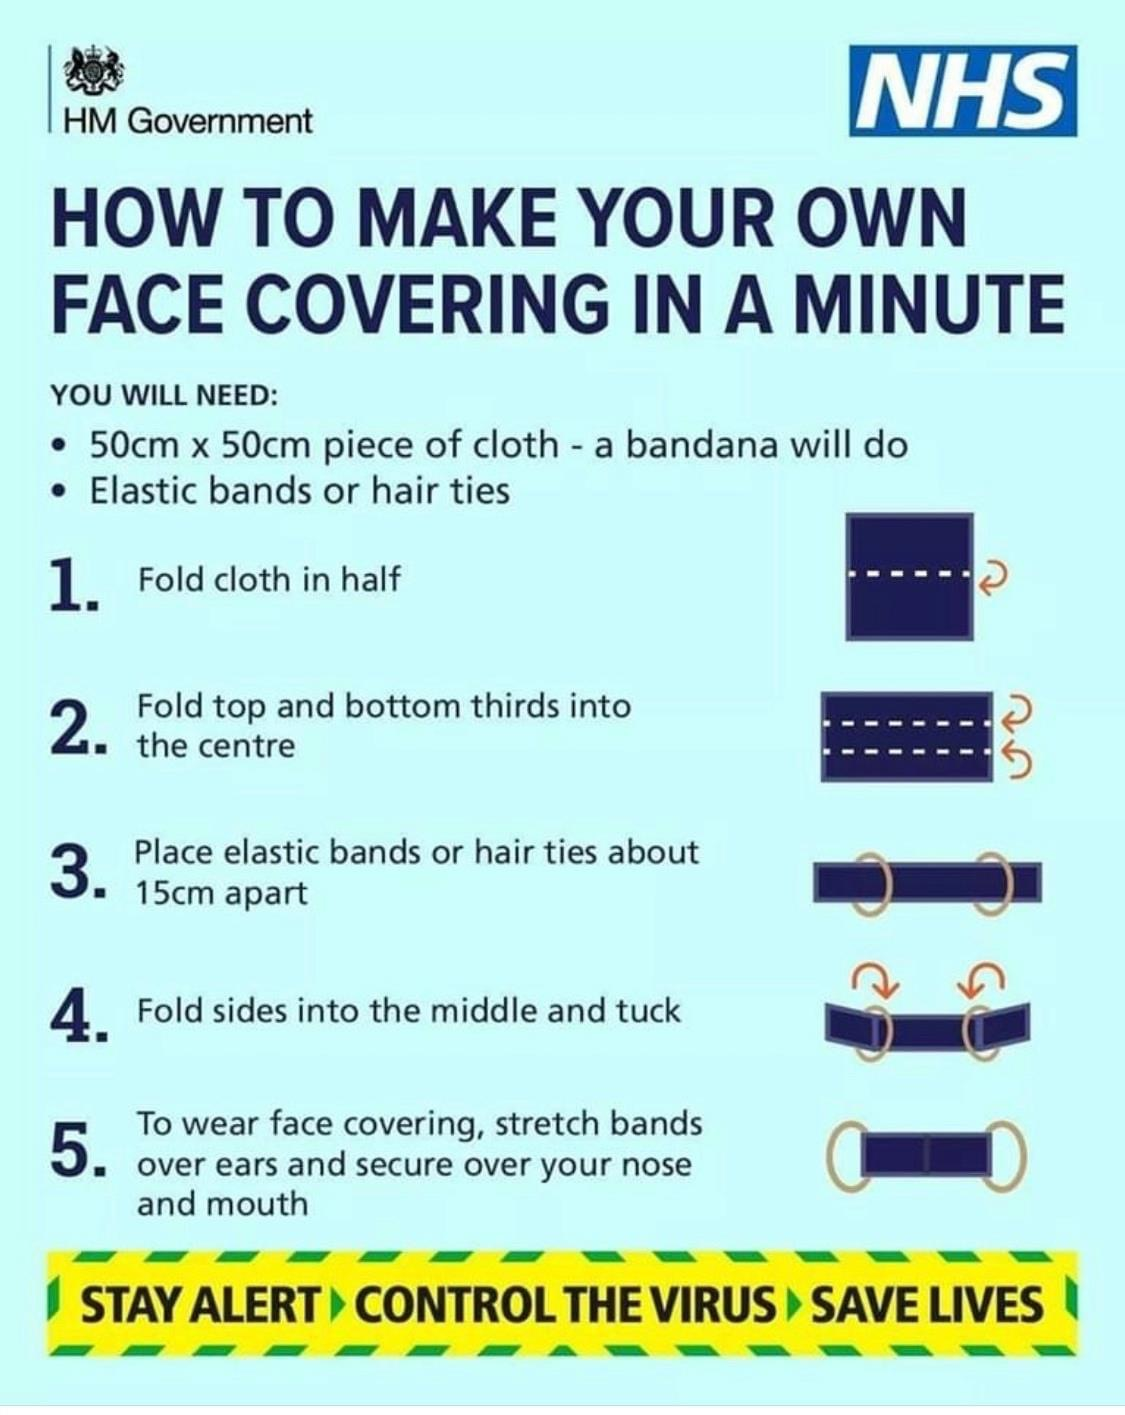 Make own face covering